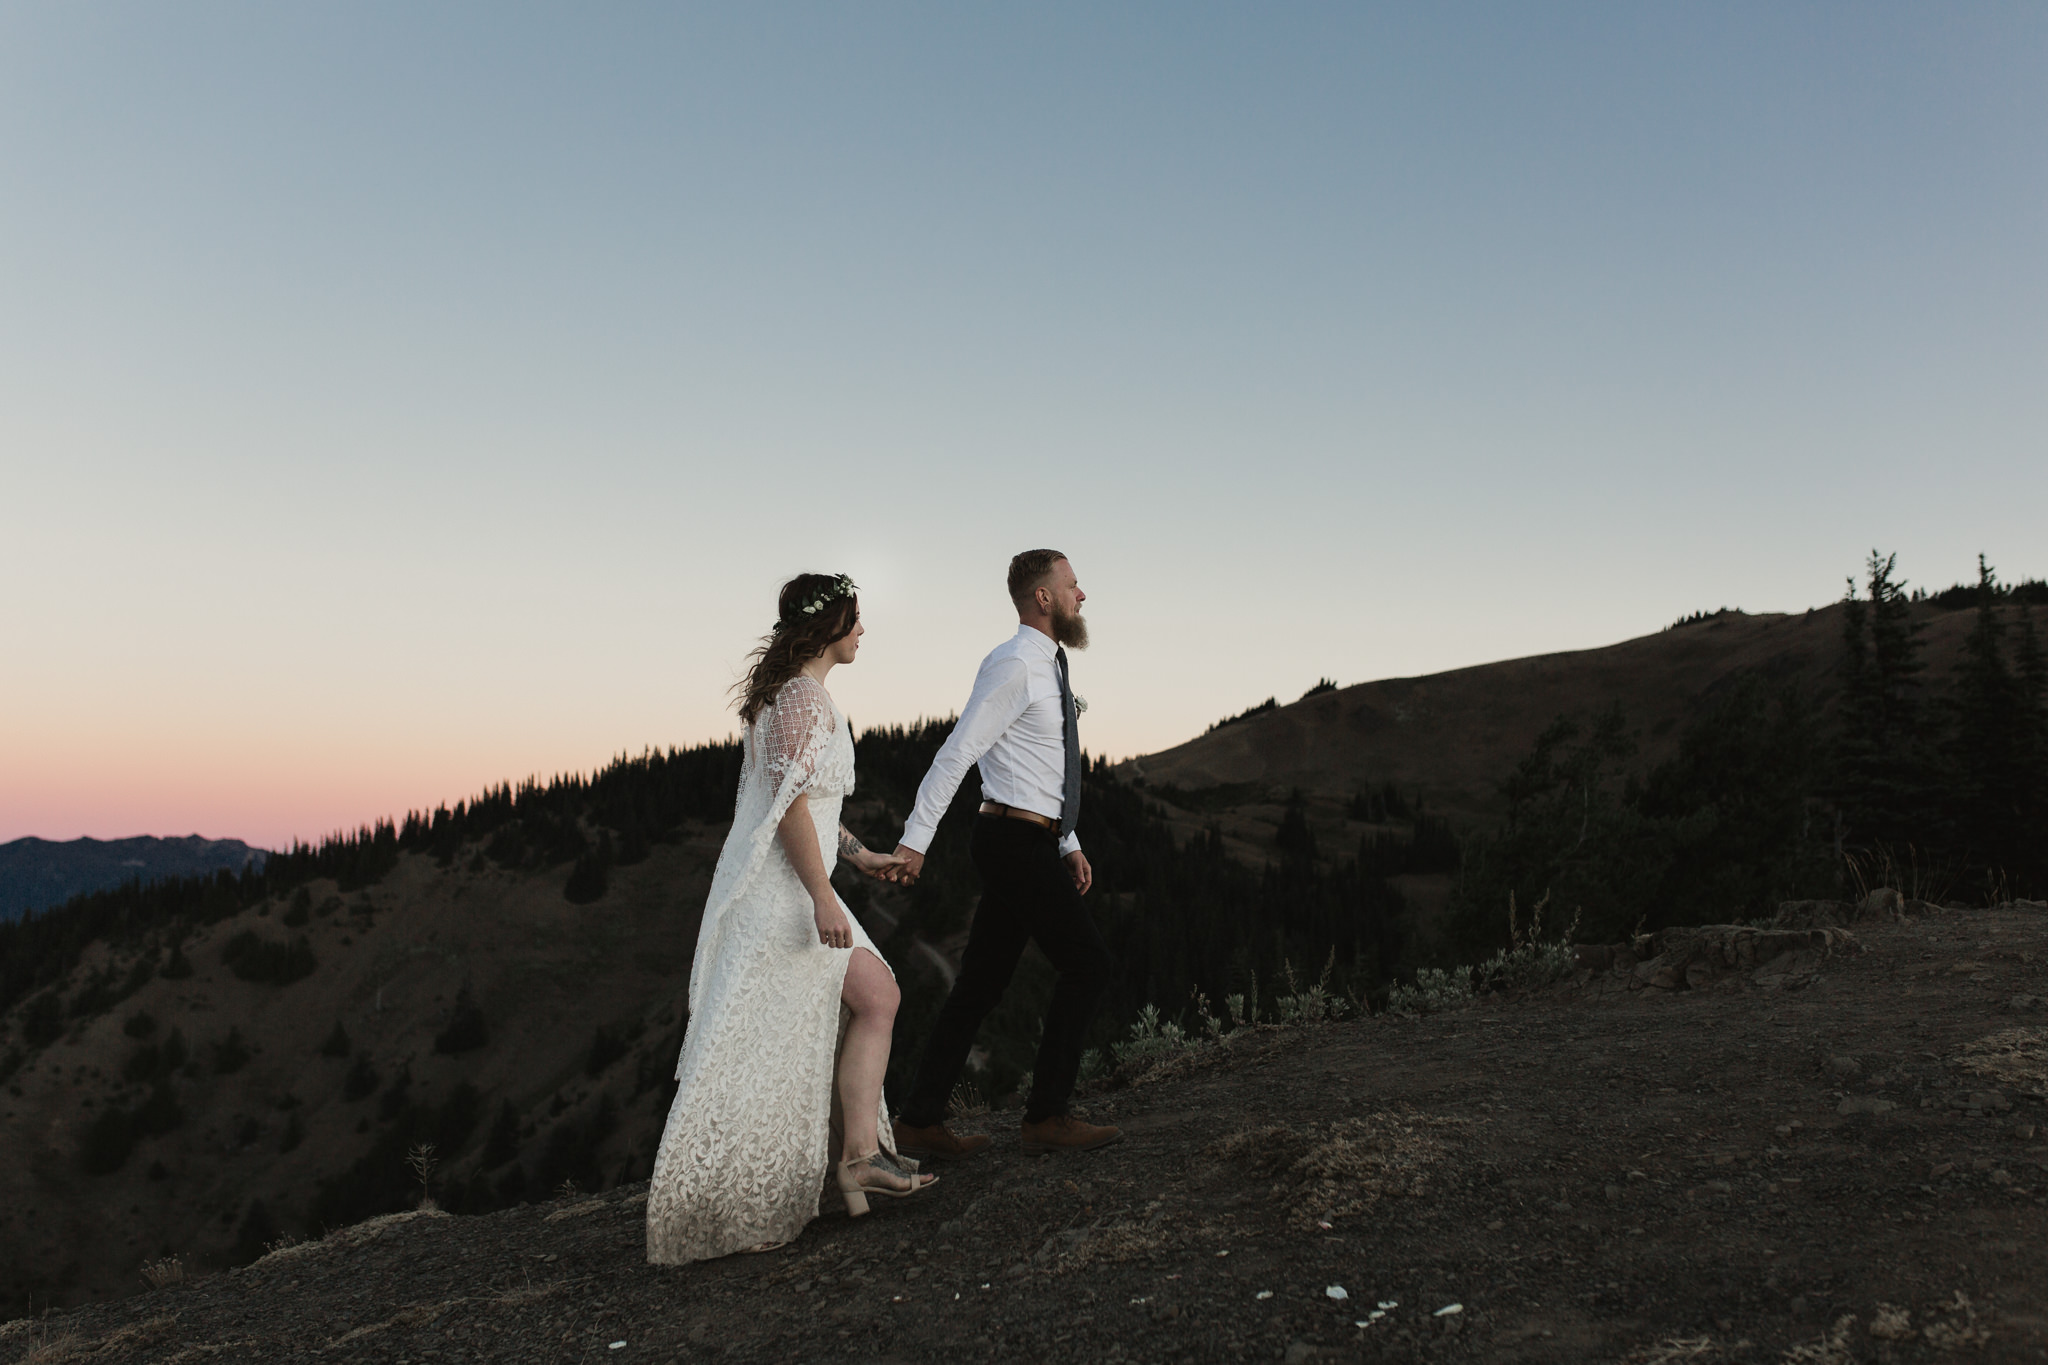 JESSE + KASIE - MOUNTAIN TOP ELOPEMENT